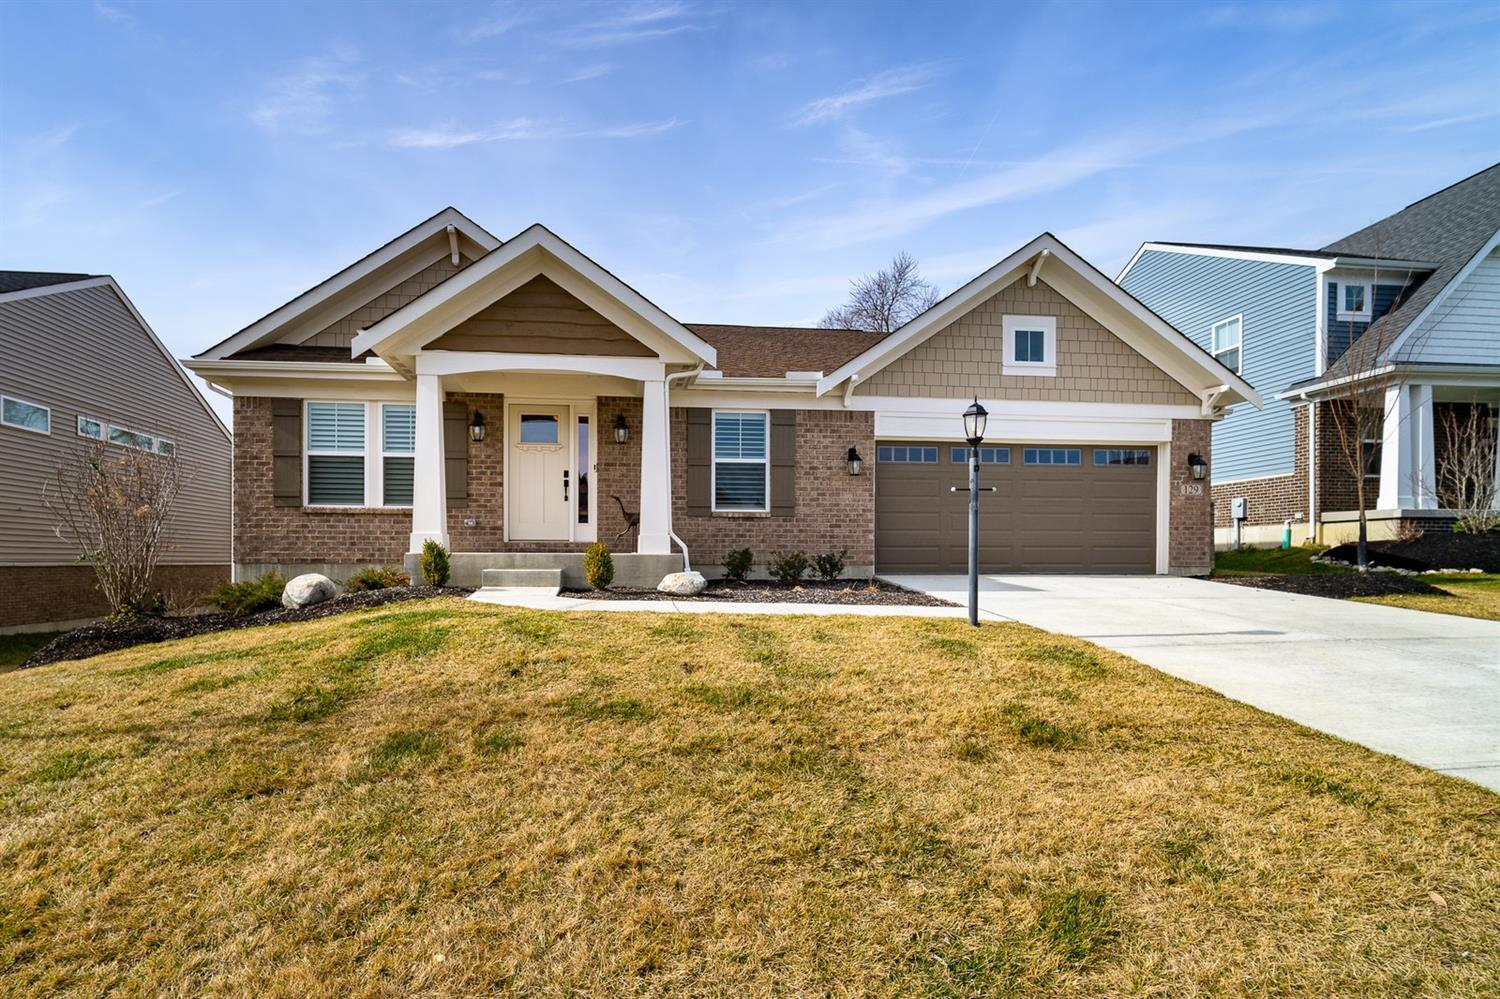 Property for sale at 129 Willow Grove Drive, Springboro,  Ohio 45066